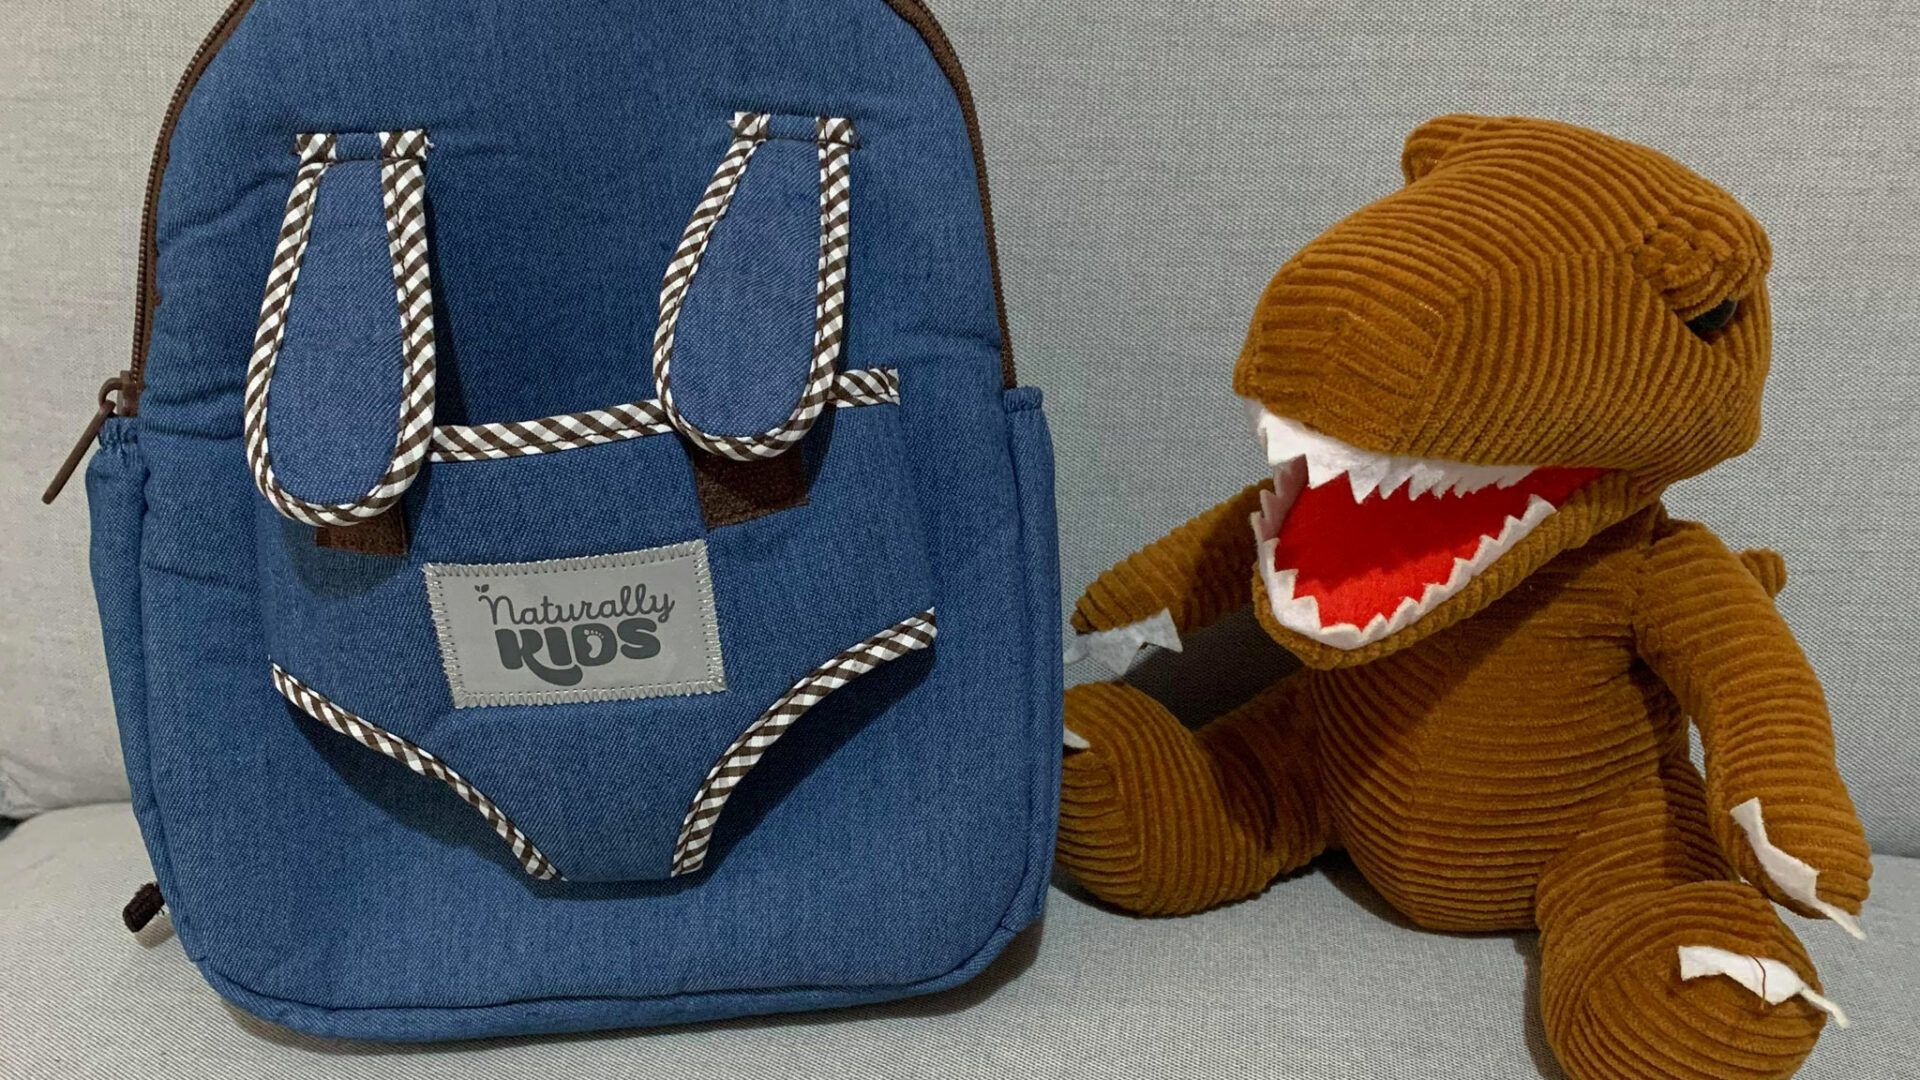 Product Review: Naturally KIDS Toddler Dinosaur Backpack with Plush Dinosaur Toy for Kids 3-5